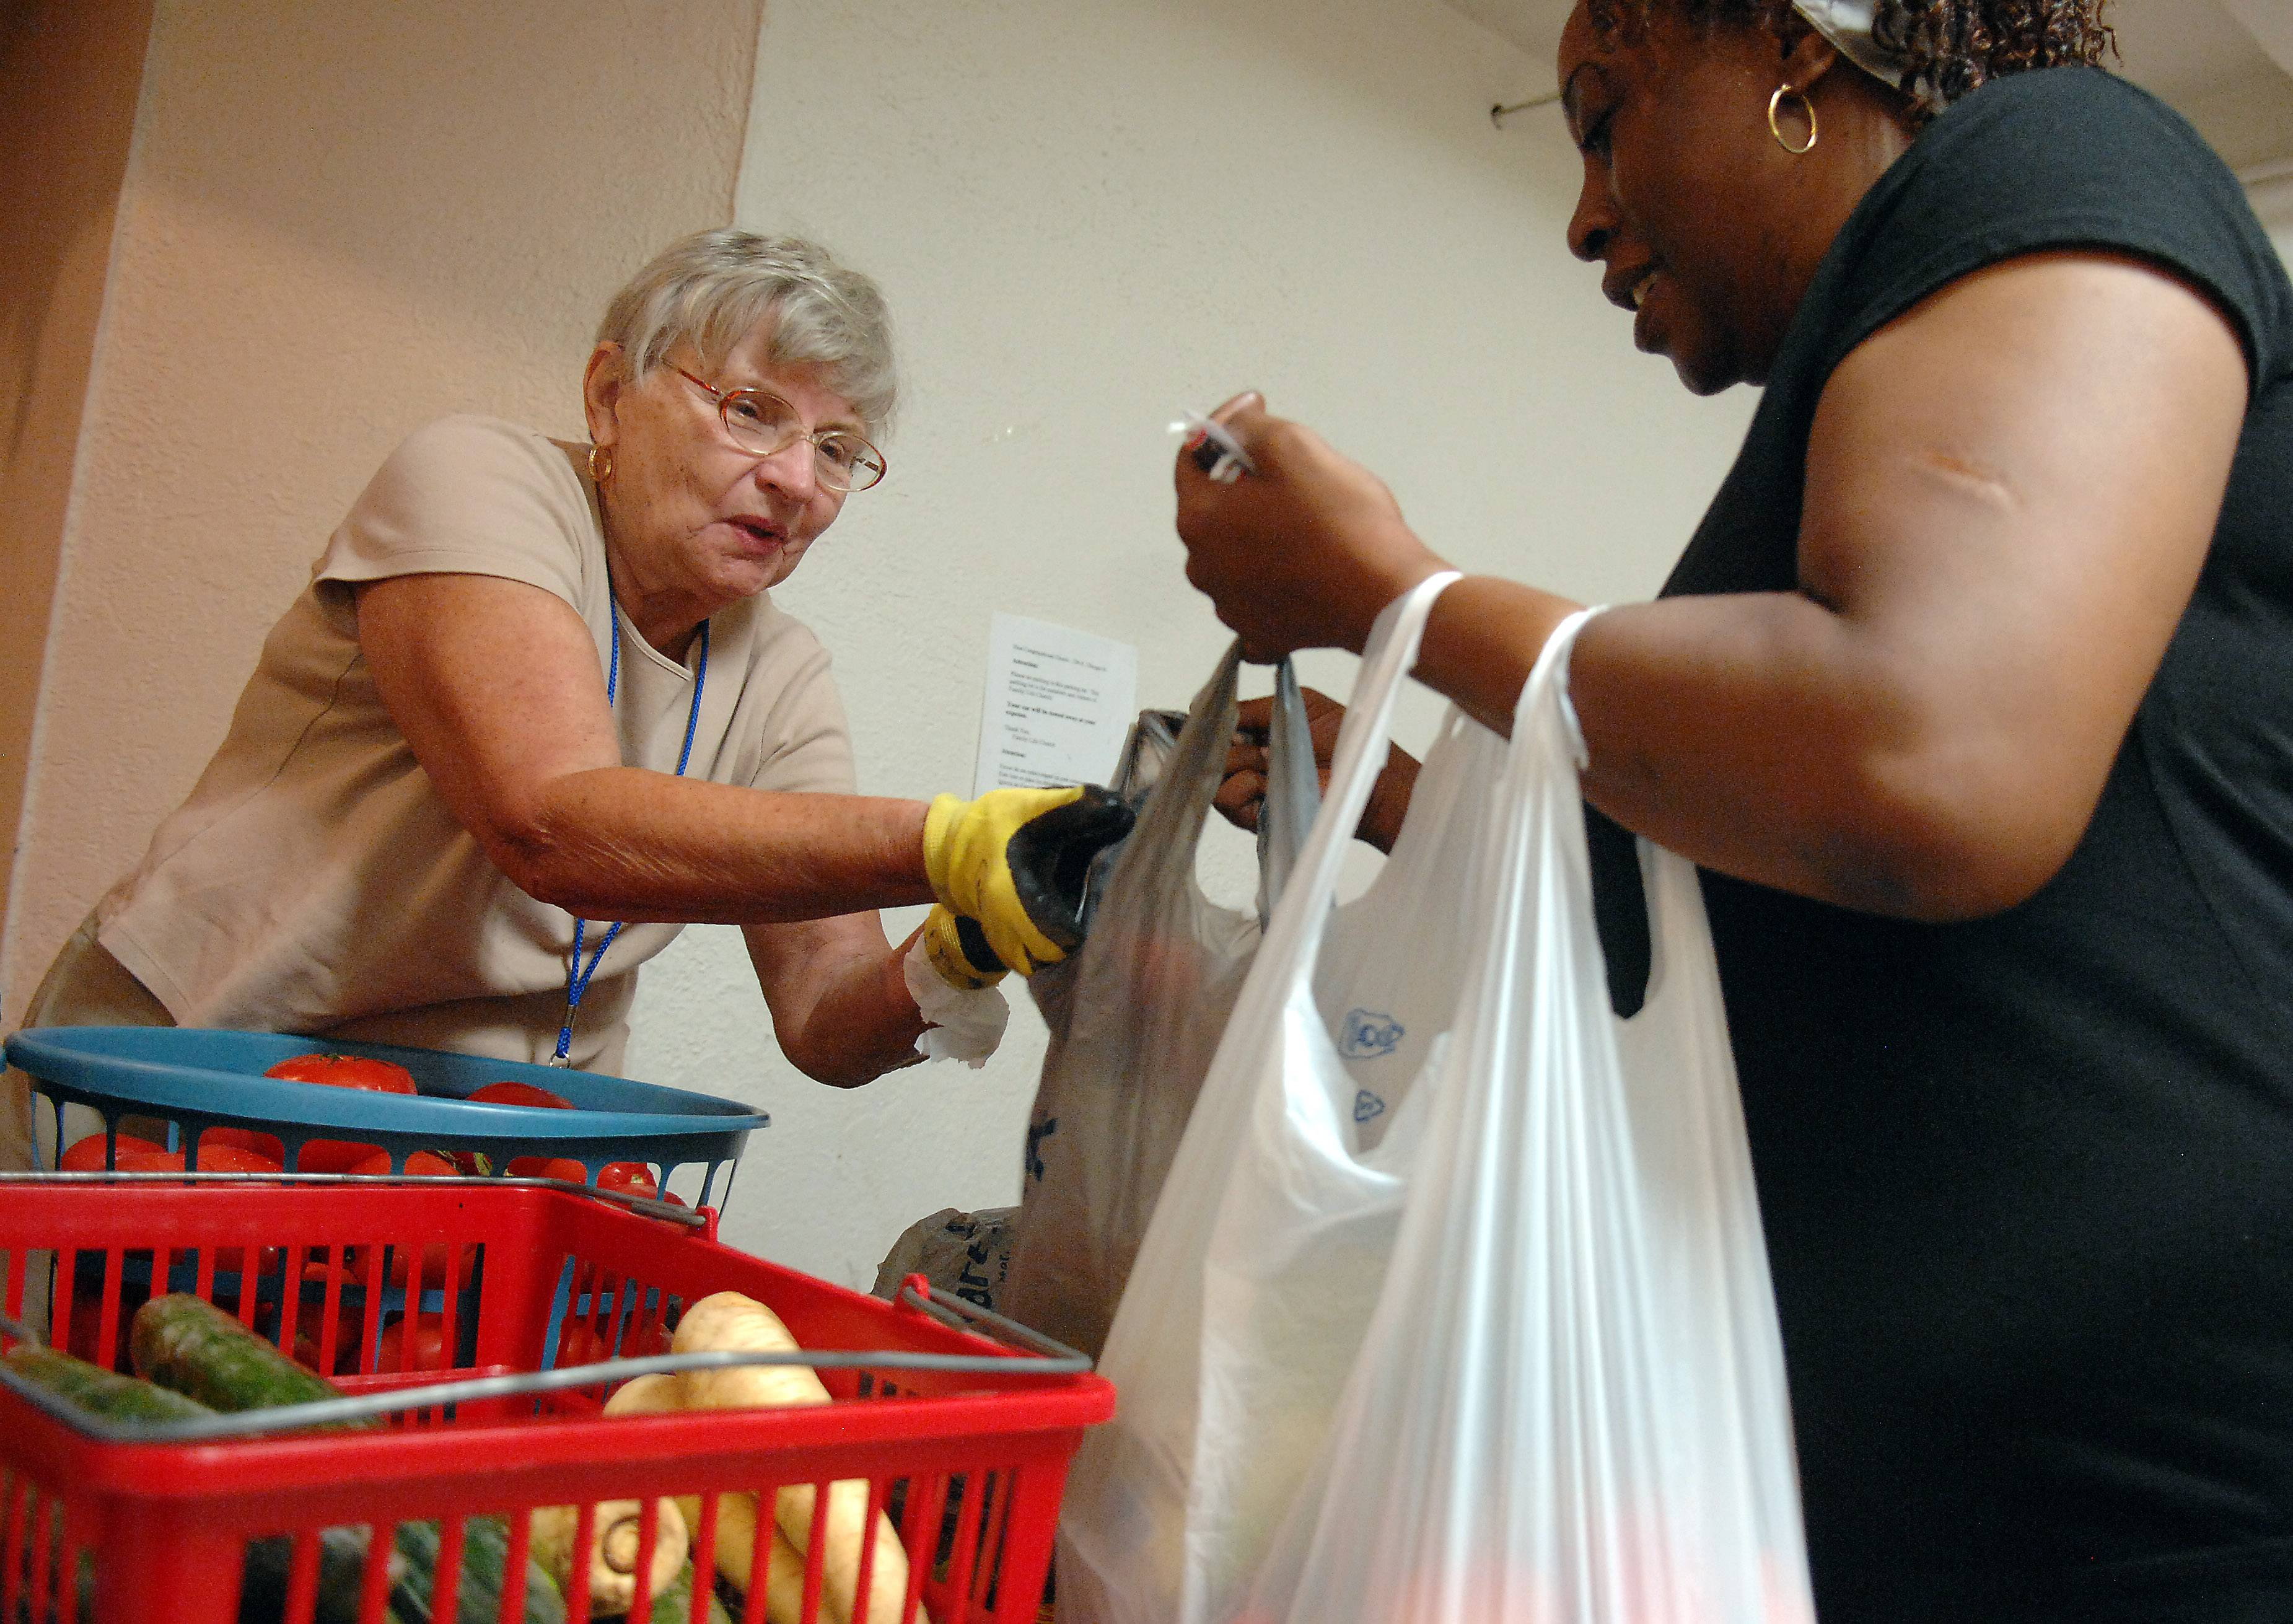 All Peoples Interfaith Food Pantry volunteer Lili Balasa, of Elgin, hands fresh produce to Shelley Hernandez of Elgin at the First Congregational Church in Elgin. Balasa has been a volunteer there for two years. The food pantry gets fresh produce twice a week from Jewel in South Elgin.